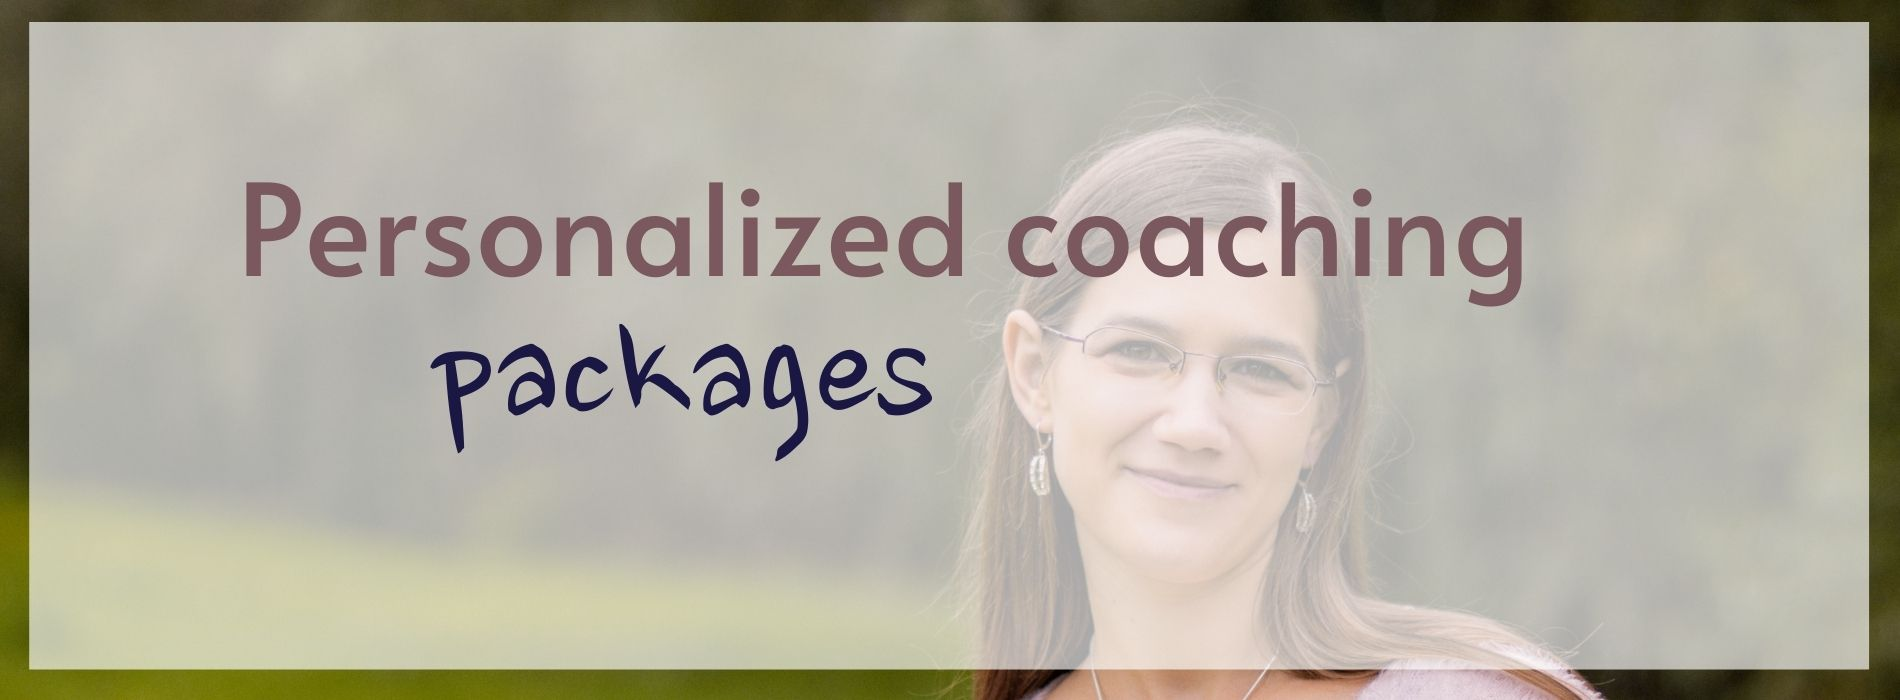 personalized coaching packages